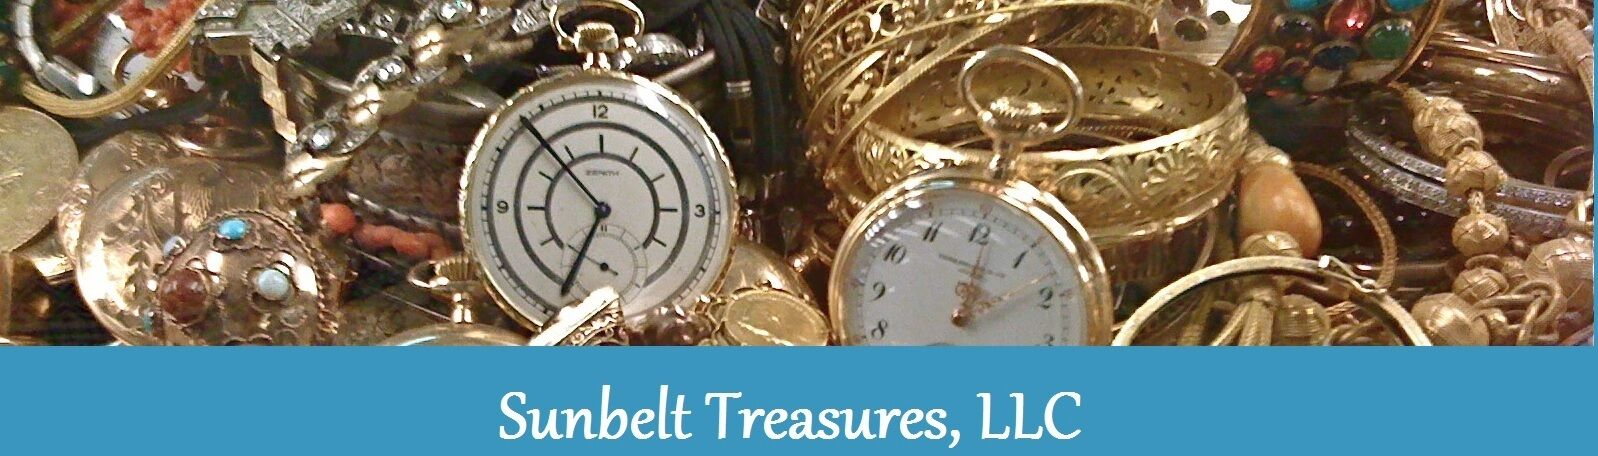 Sunbelt Treasures